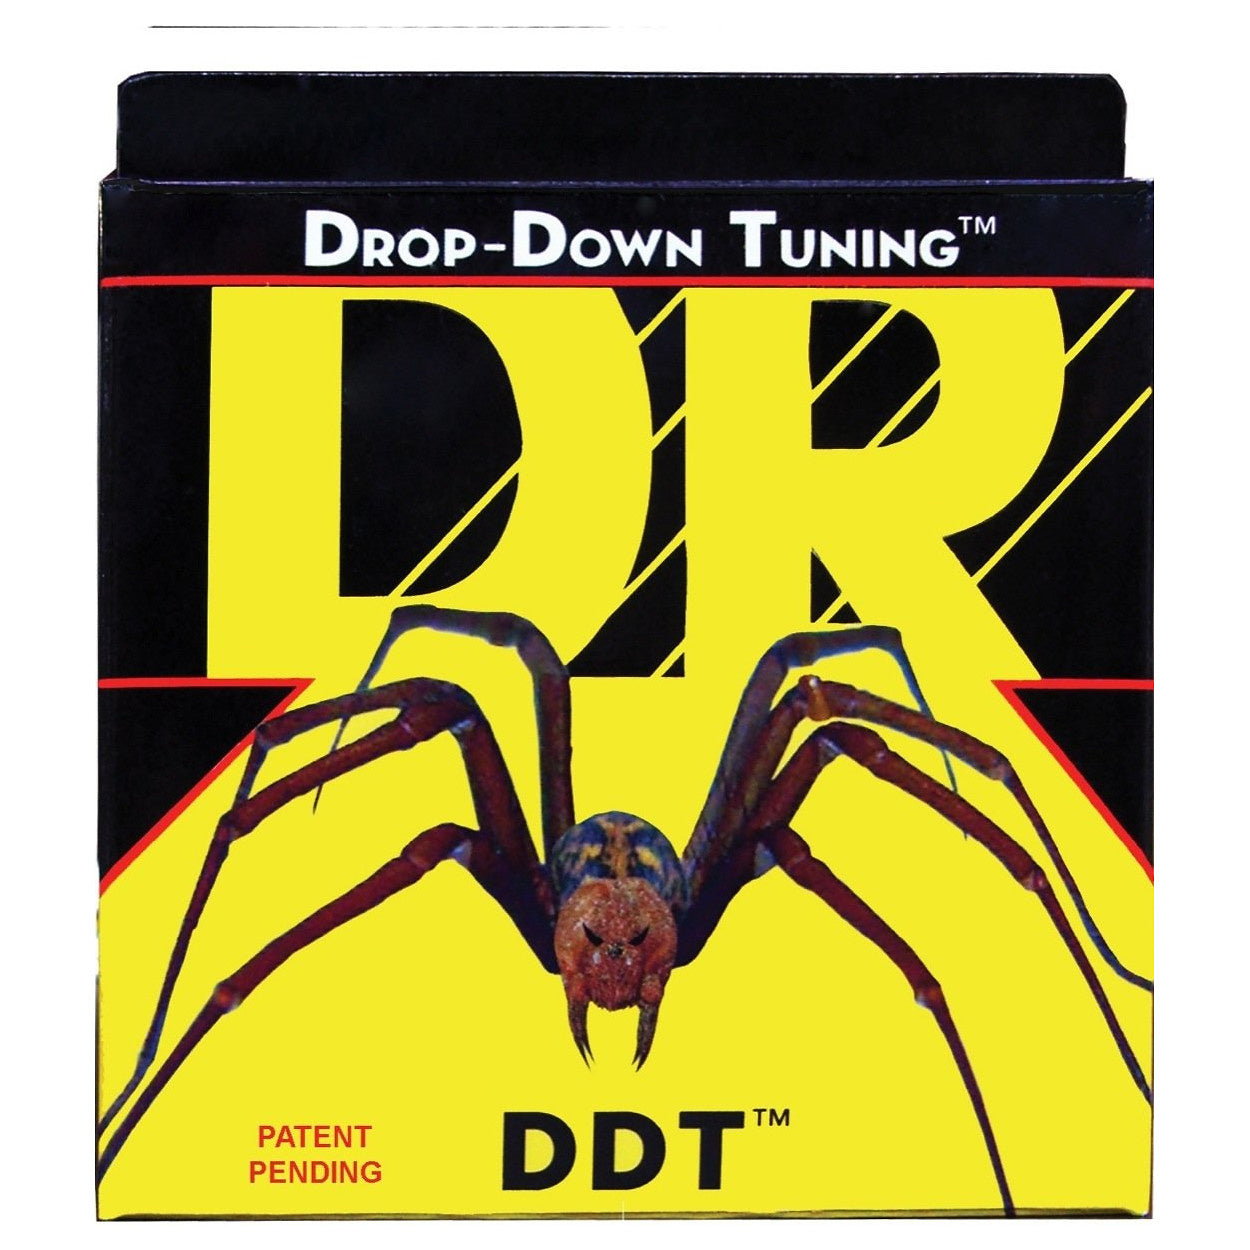 DR String DDT Drop Down Tuning Bass Strings, DDT-55, 55-115